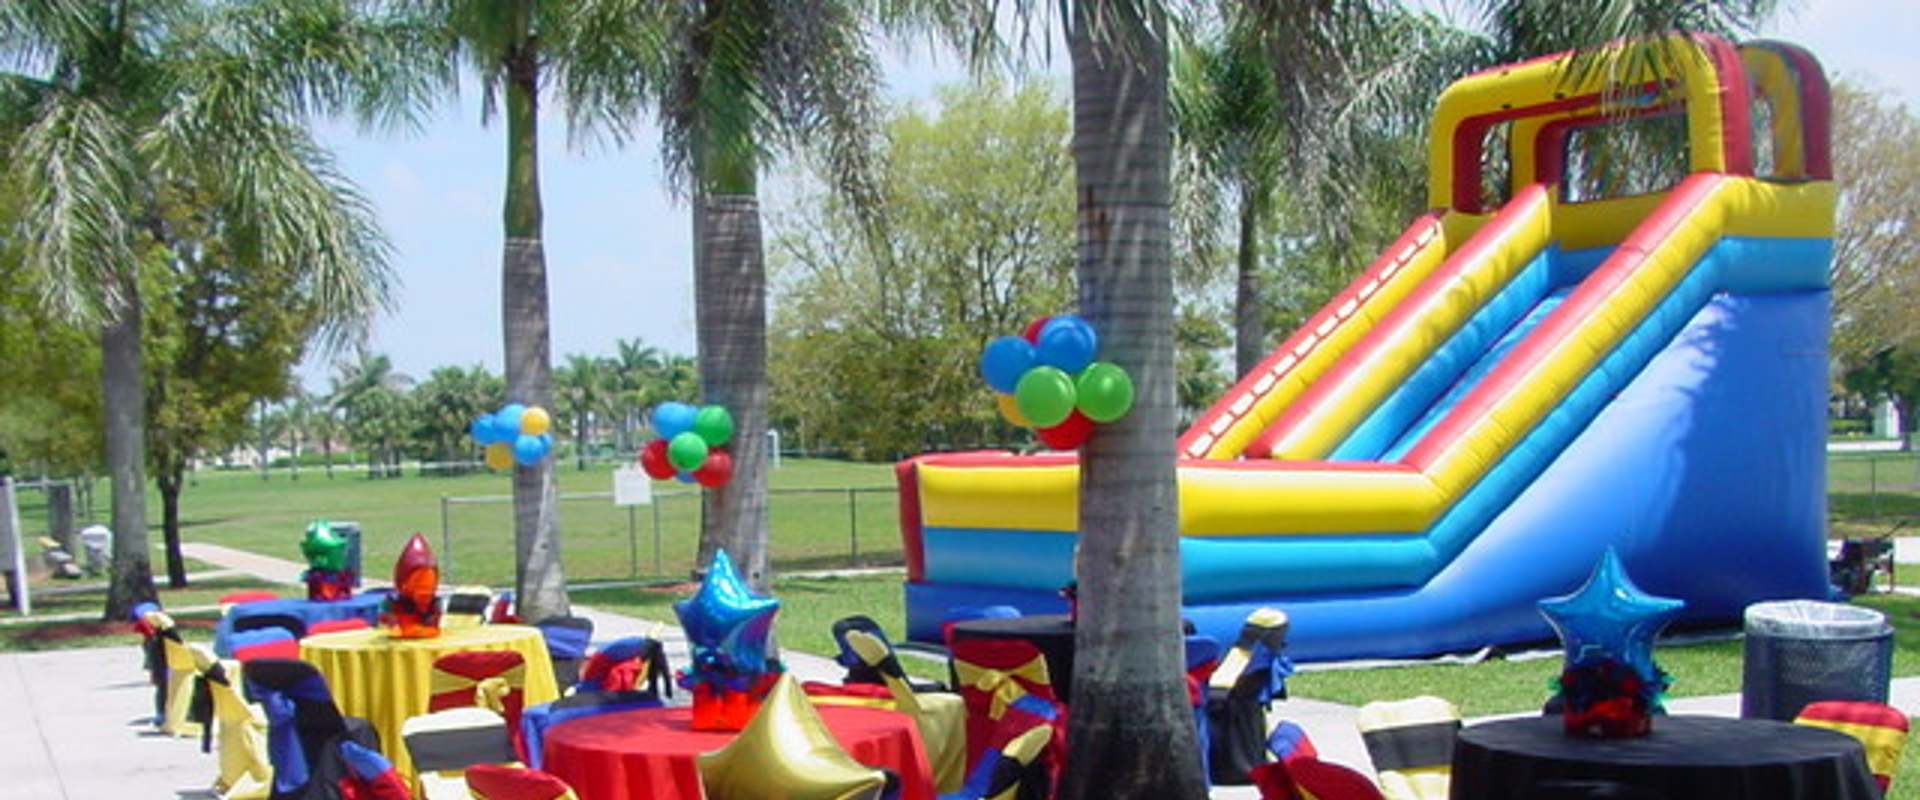 Swell Bounce House Water Slide Rentals In Pensacola Kids Party Home Interior And Landscaping Ologienasavecom